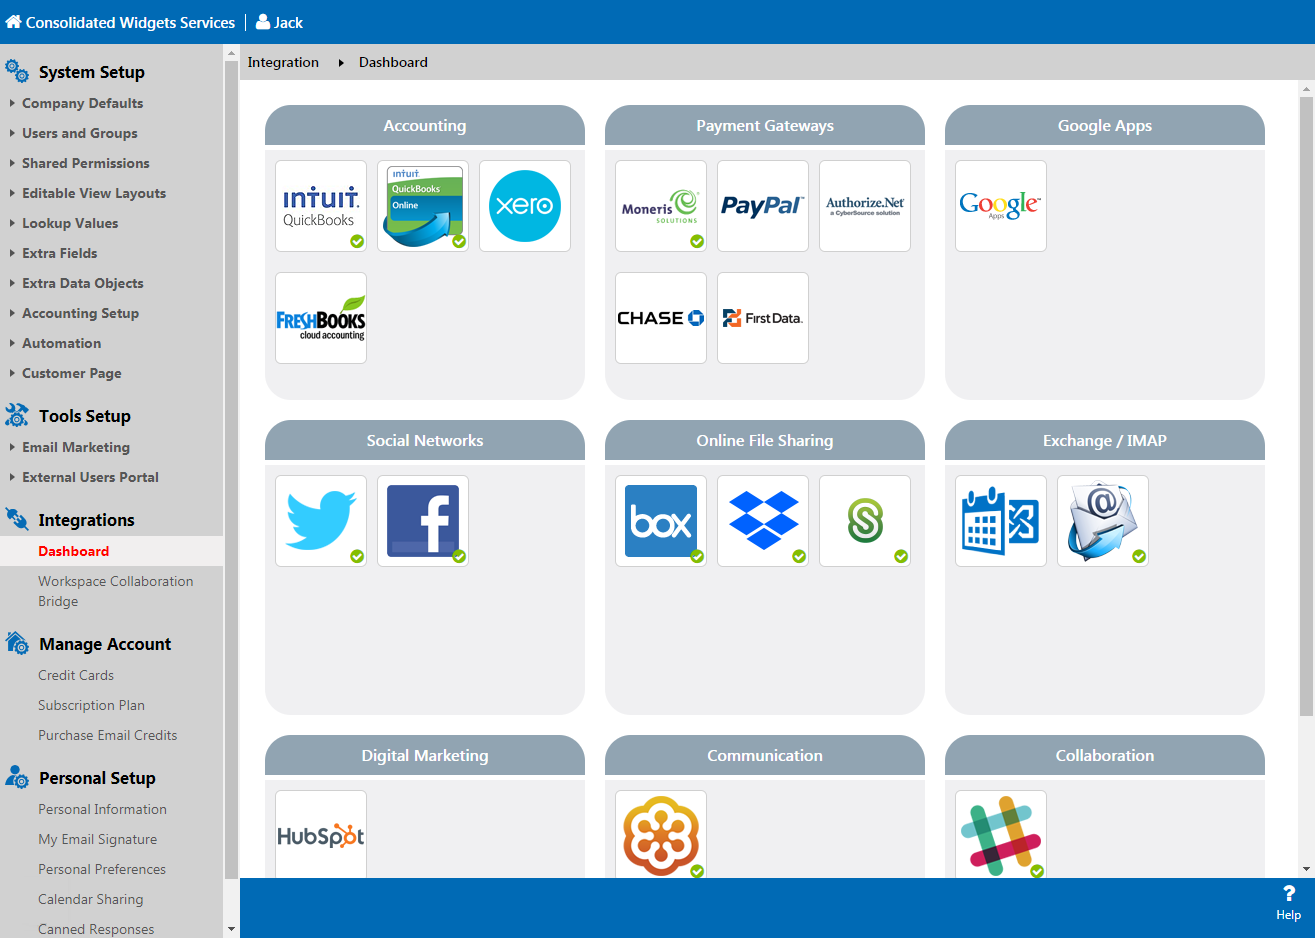 Integrations dashboard